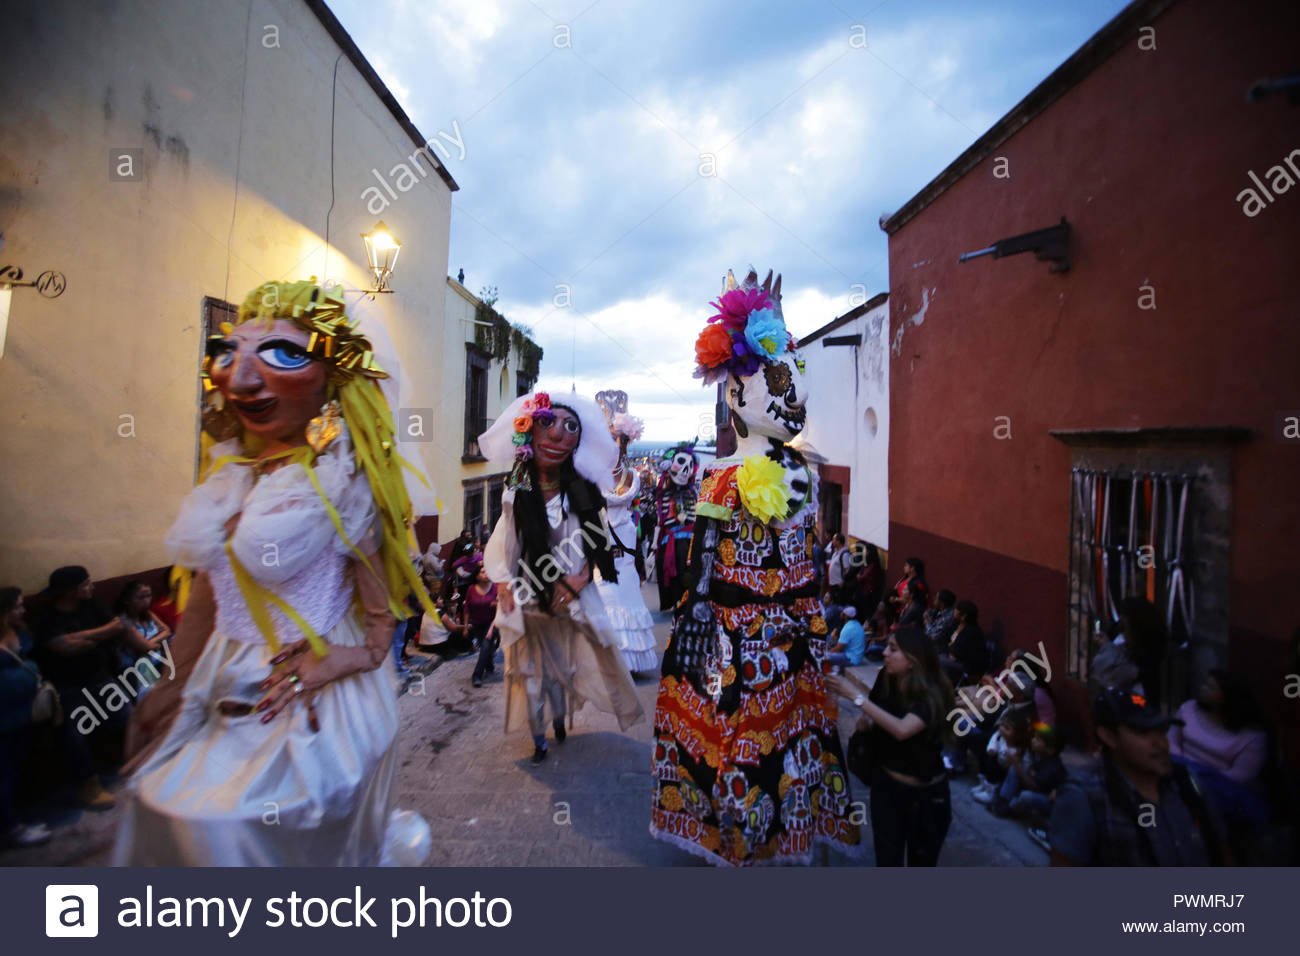 Mojigangas, giant puppets, dancing in an anual parade in San Miguel de allende, Mexico - Stock Image